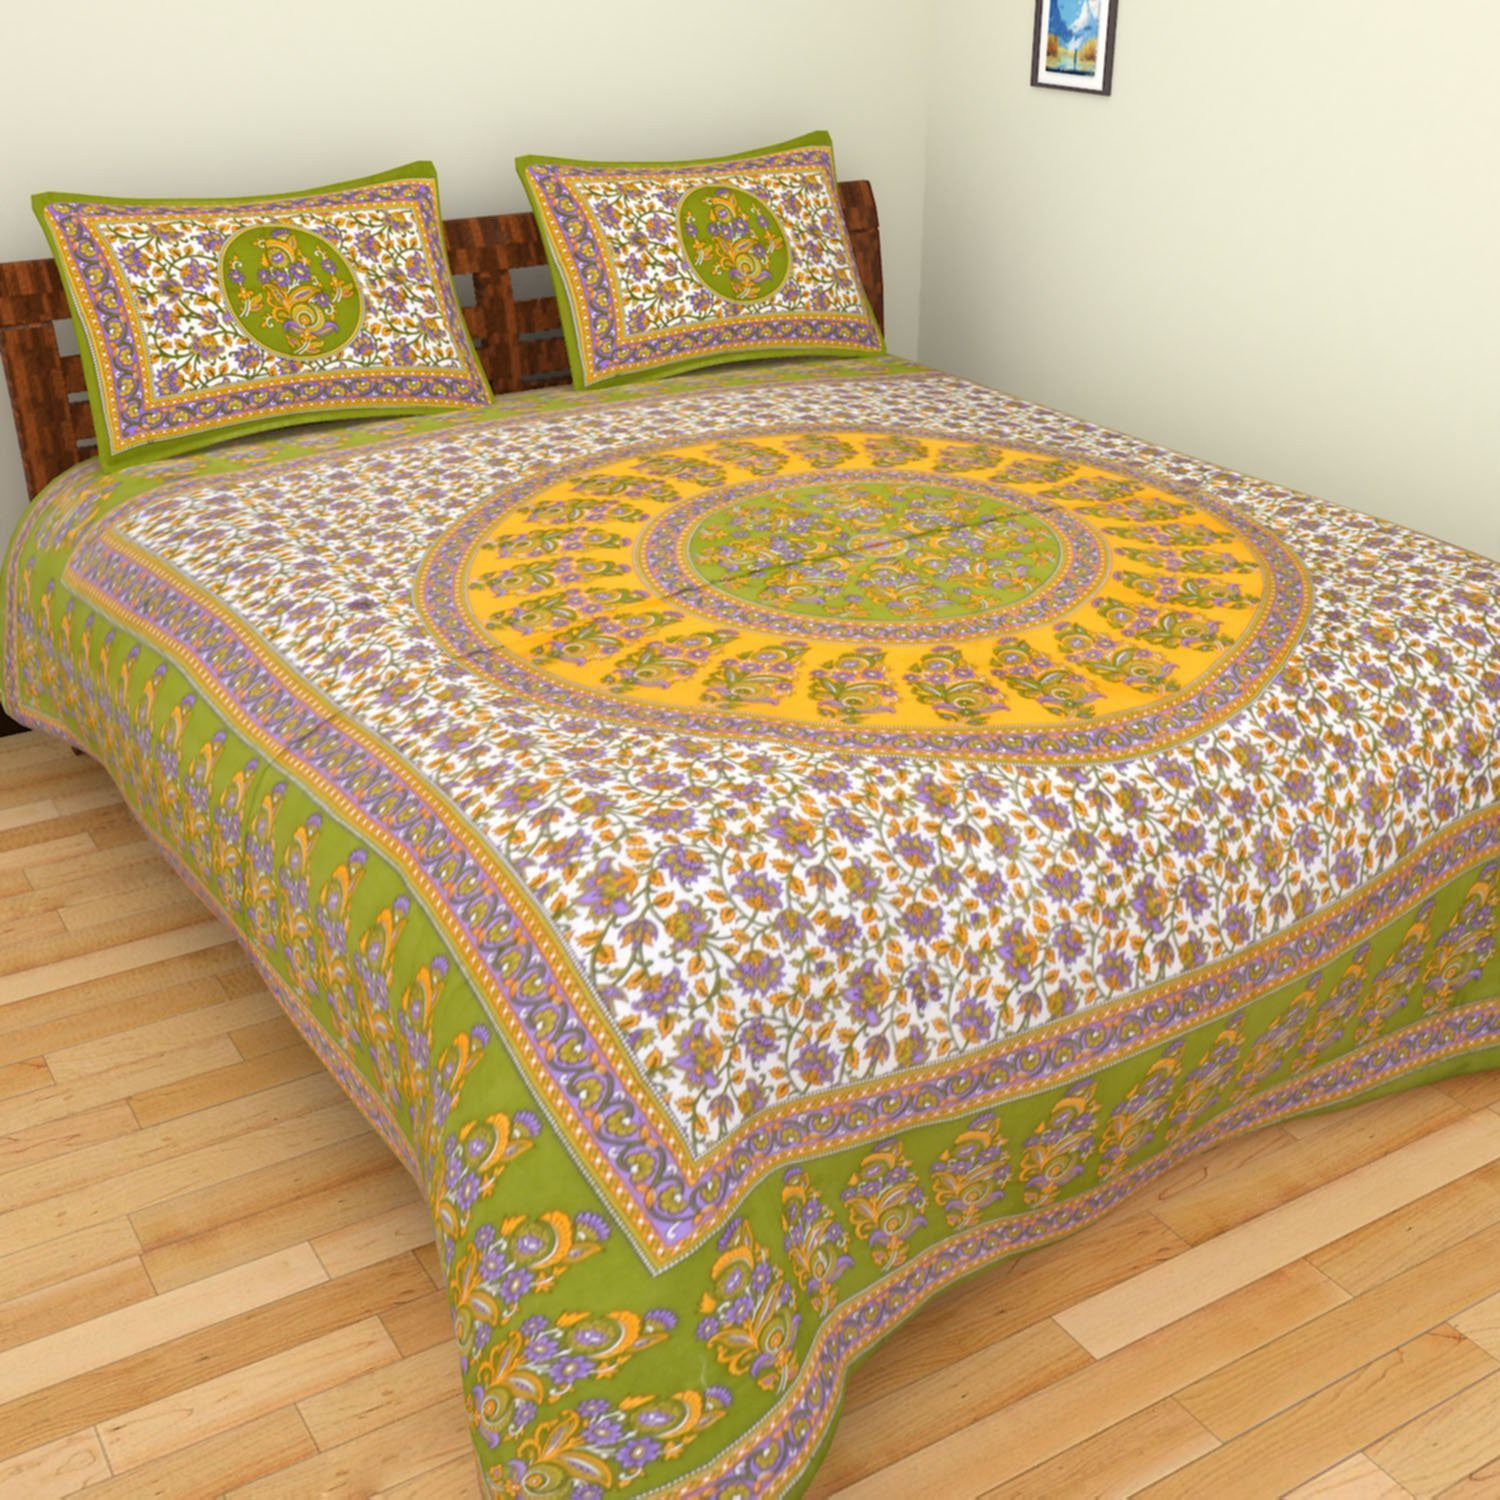 Aone Collection Cotton Floral Single Bedsheet(1 Bedsheet, 2 Pillow Cover, Green, White)